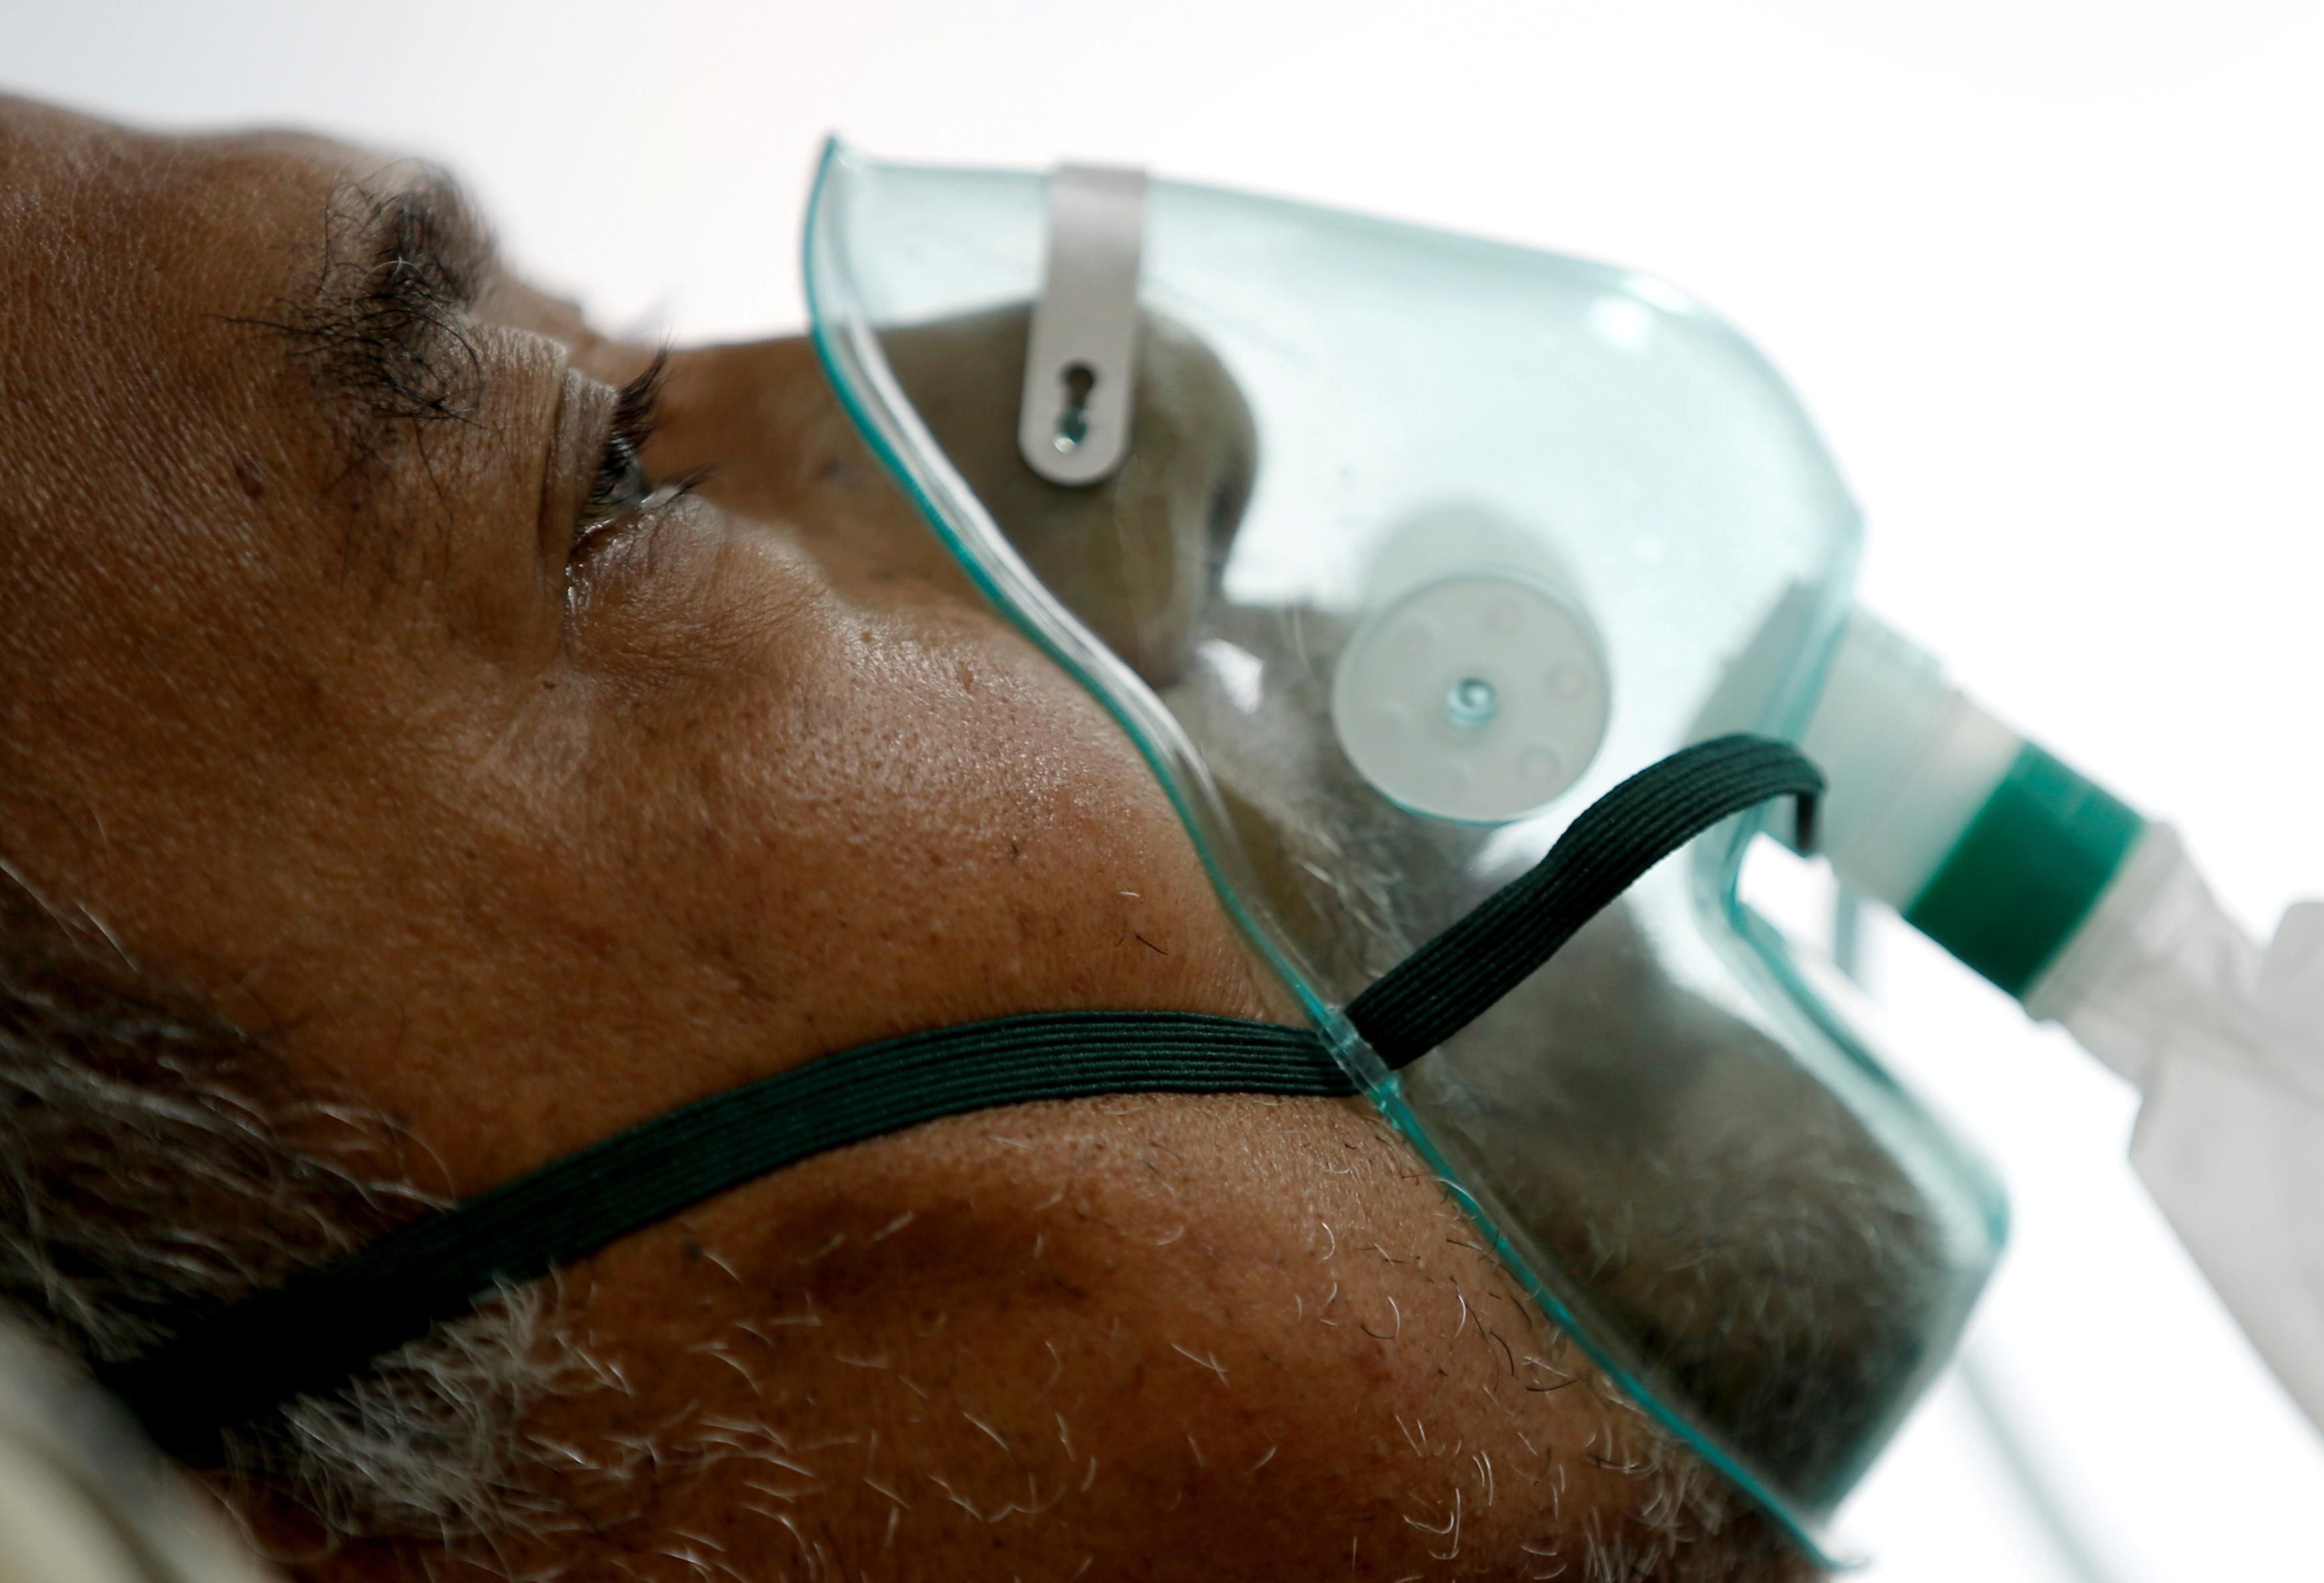 A patient suffering from the coronavirus disease (COVID-19) breathes with a non-rebreather mask in an isolation room at a hospital in Bogor, Indonesia January 26, 2021.